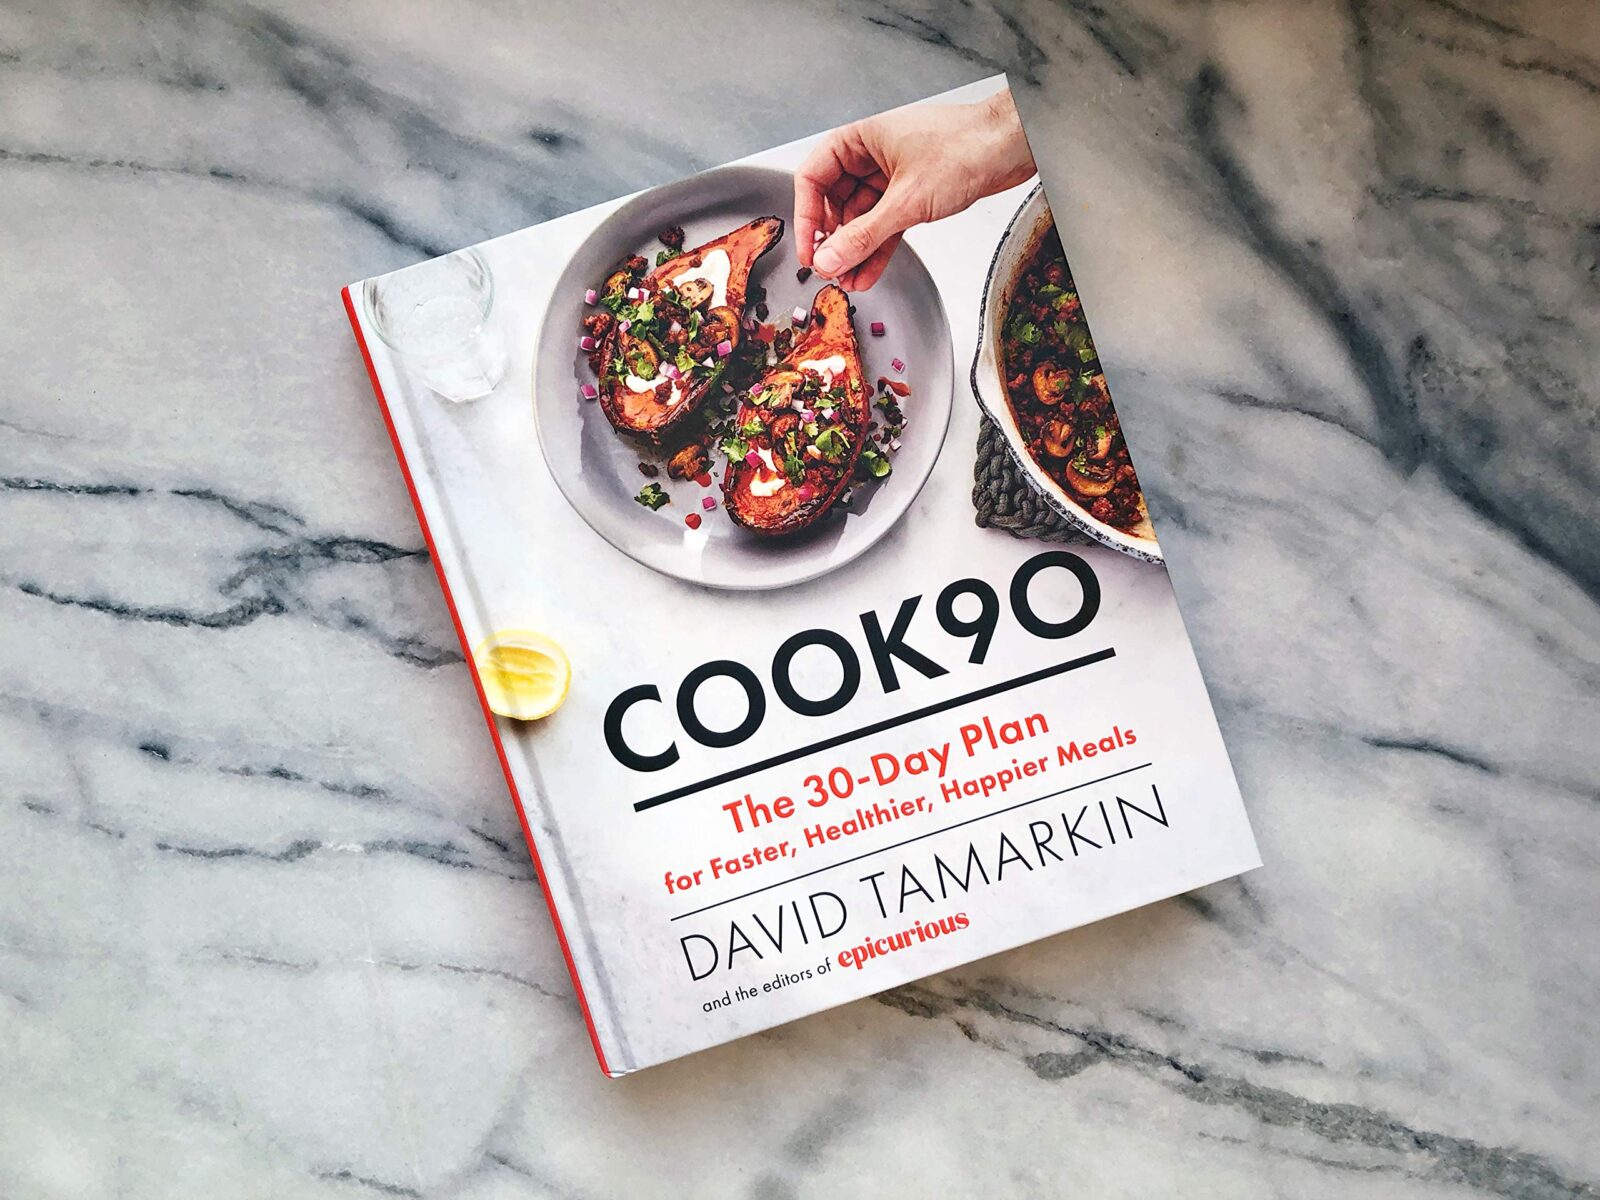 epicurious david tamarkin edit seven cookbooks january 2019